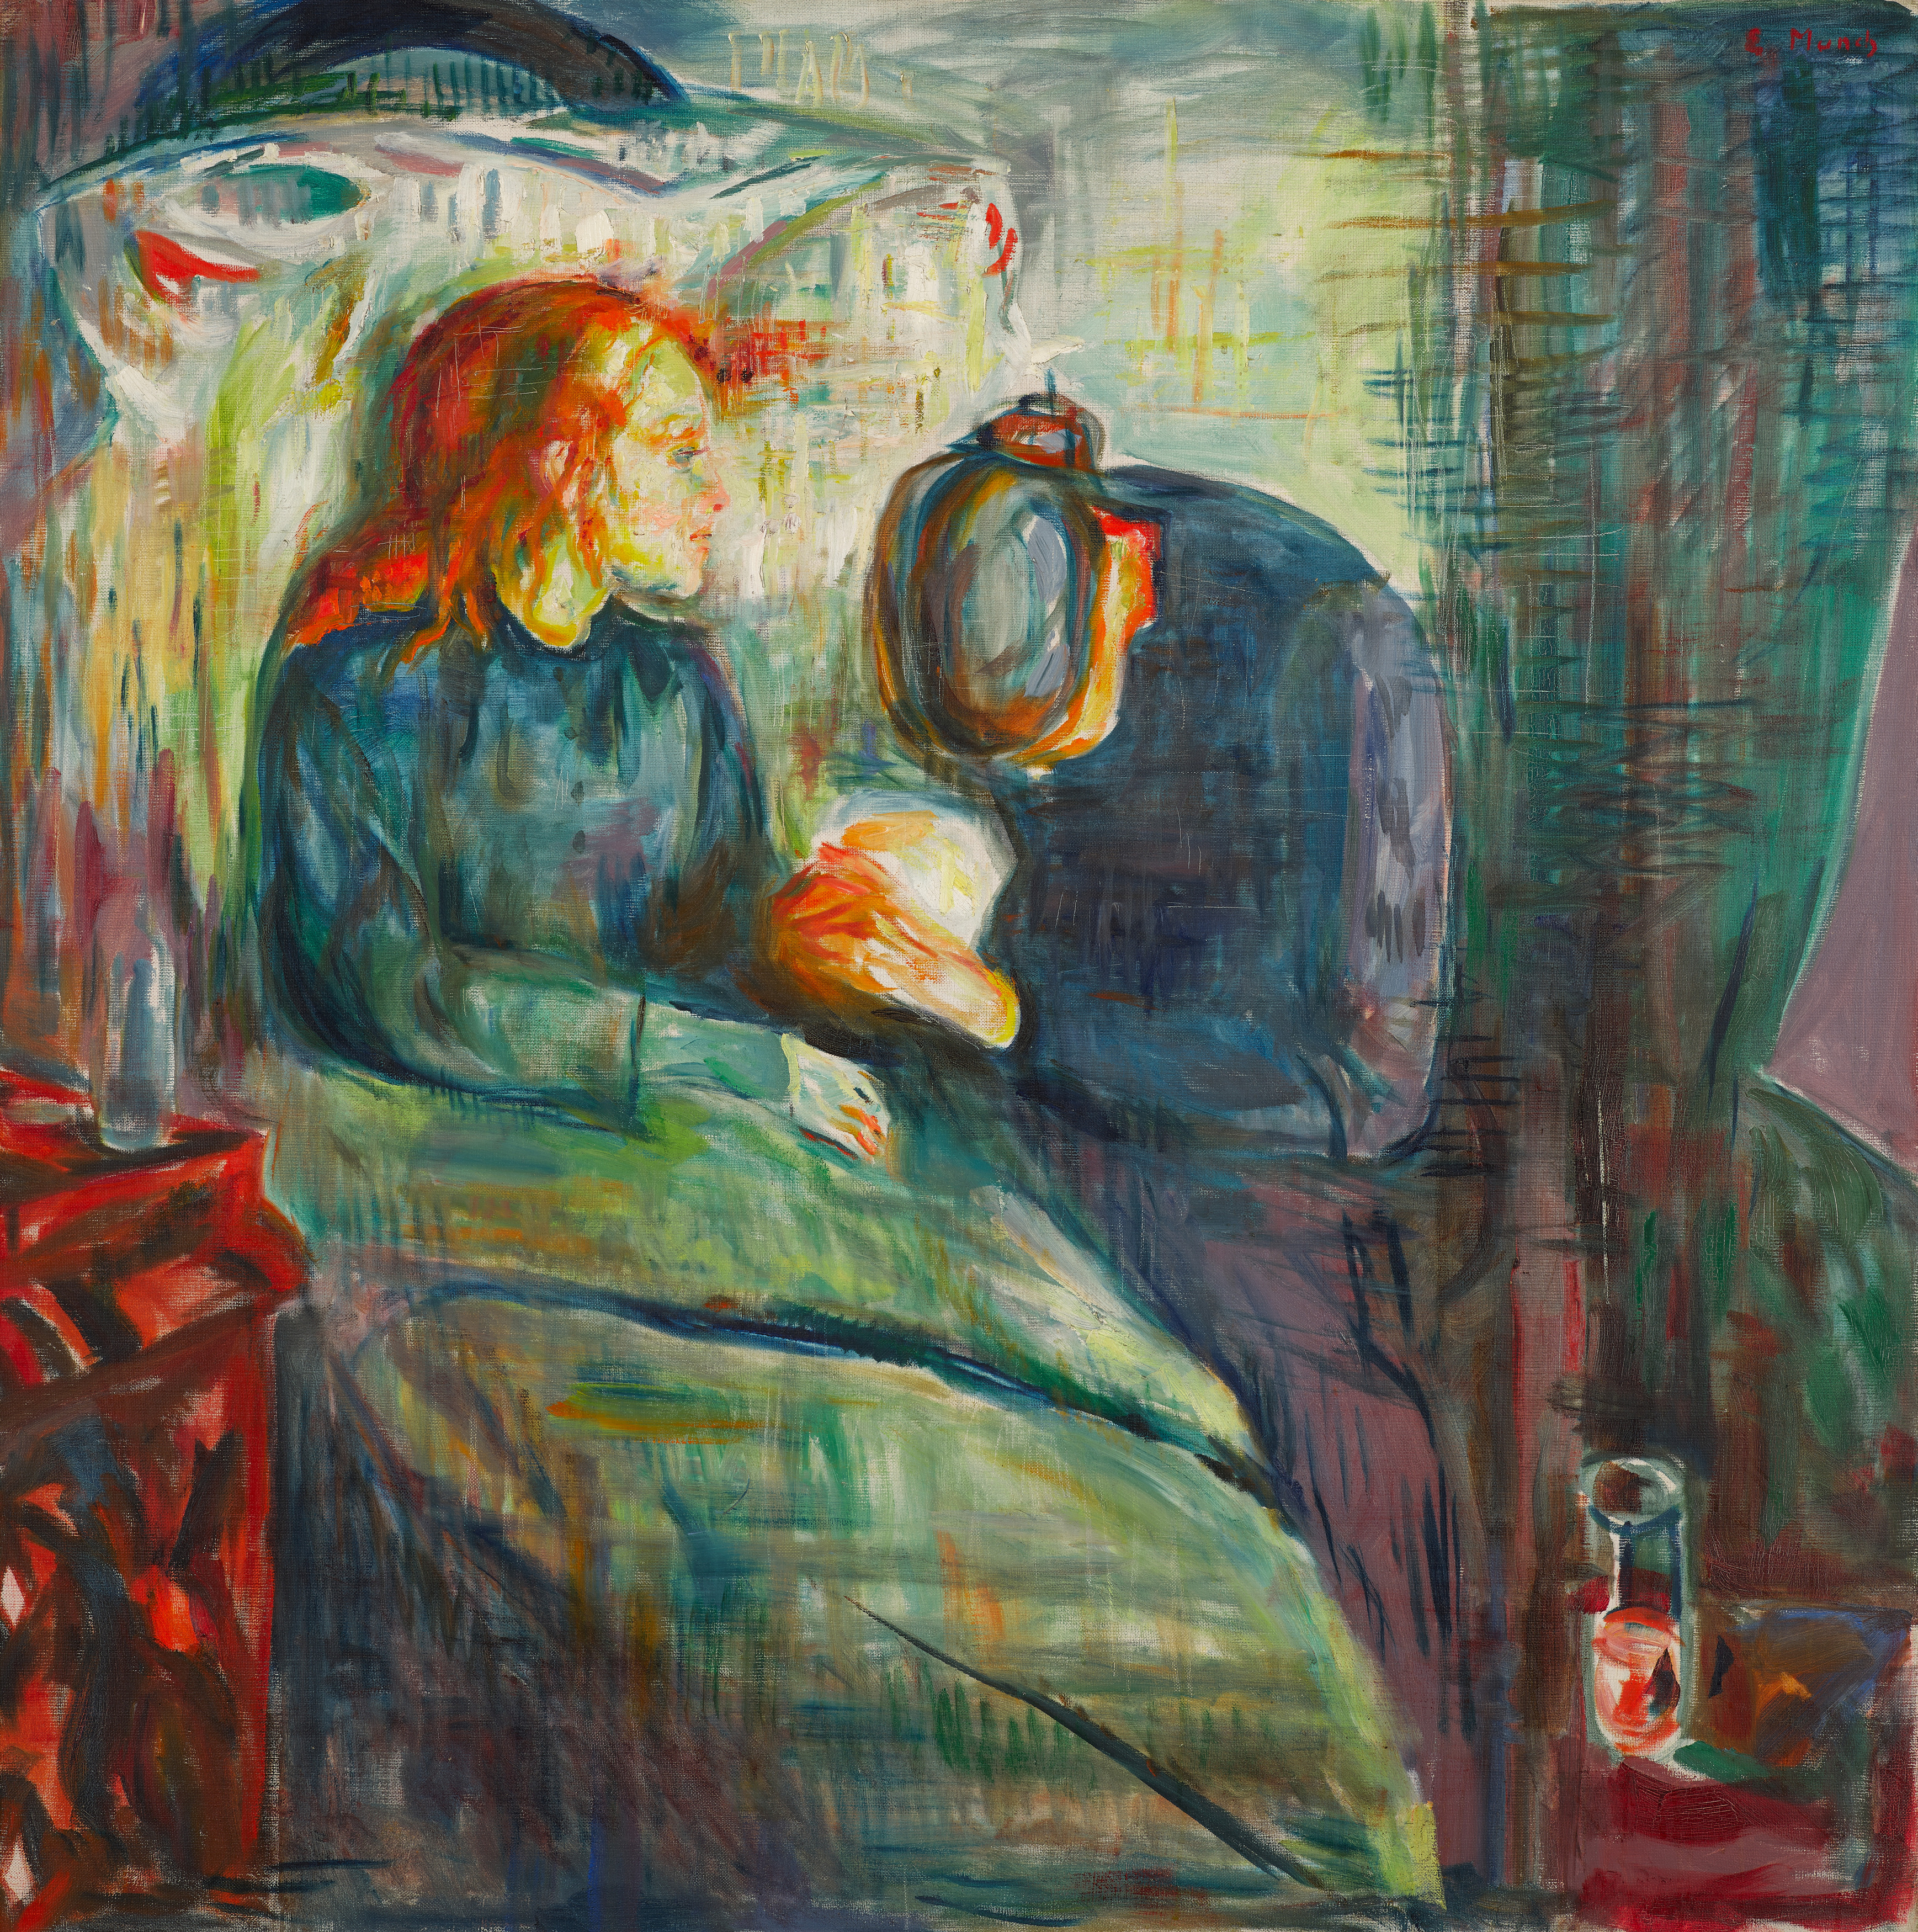 Edvard Munch: The Sick Child. Oil on canvas, 1925. Photo: Munchmuseet